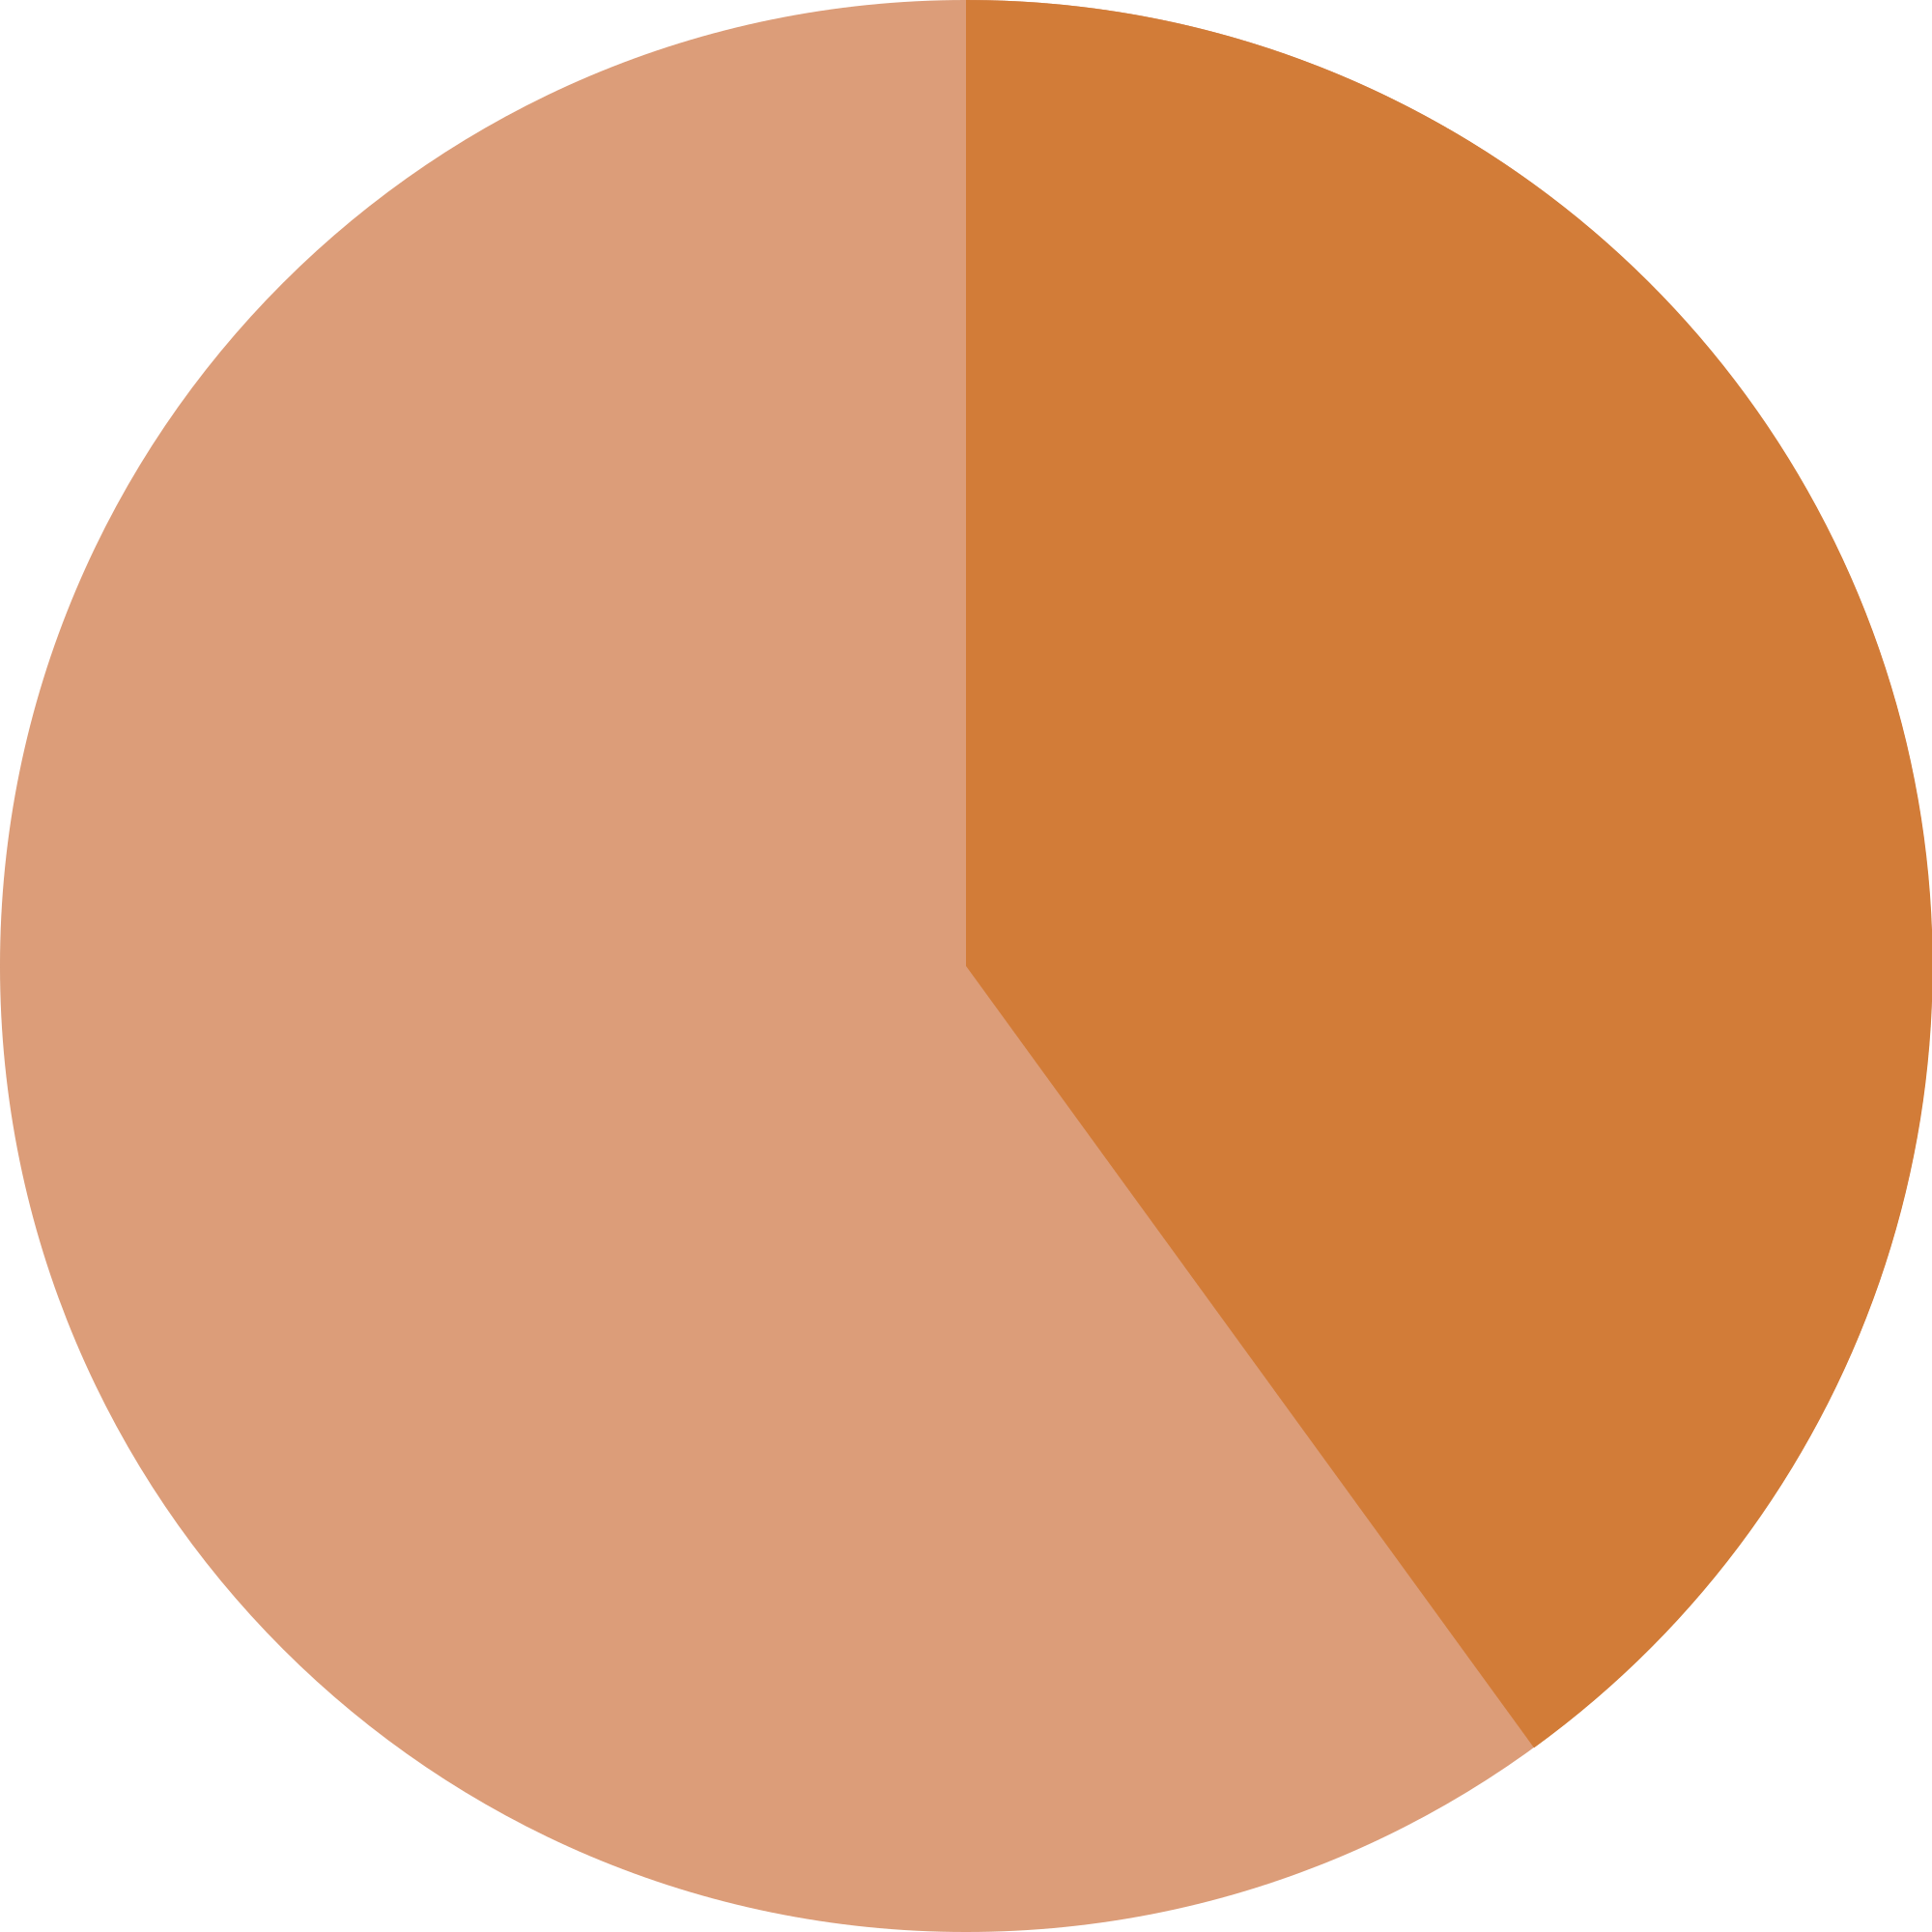 empty 40% pie chart transparent png - stickpng